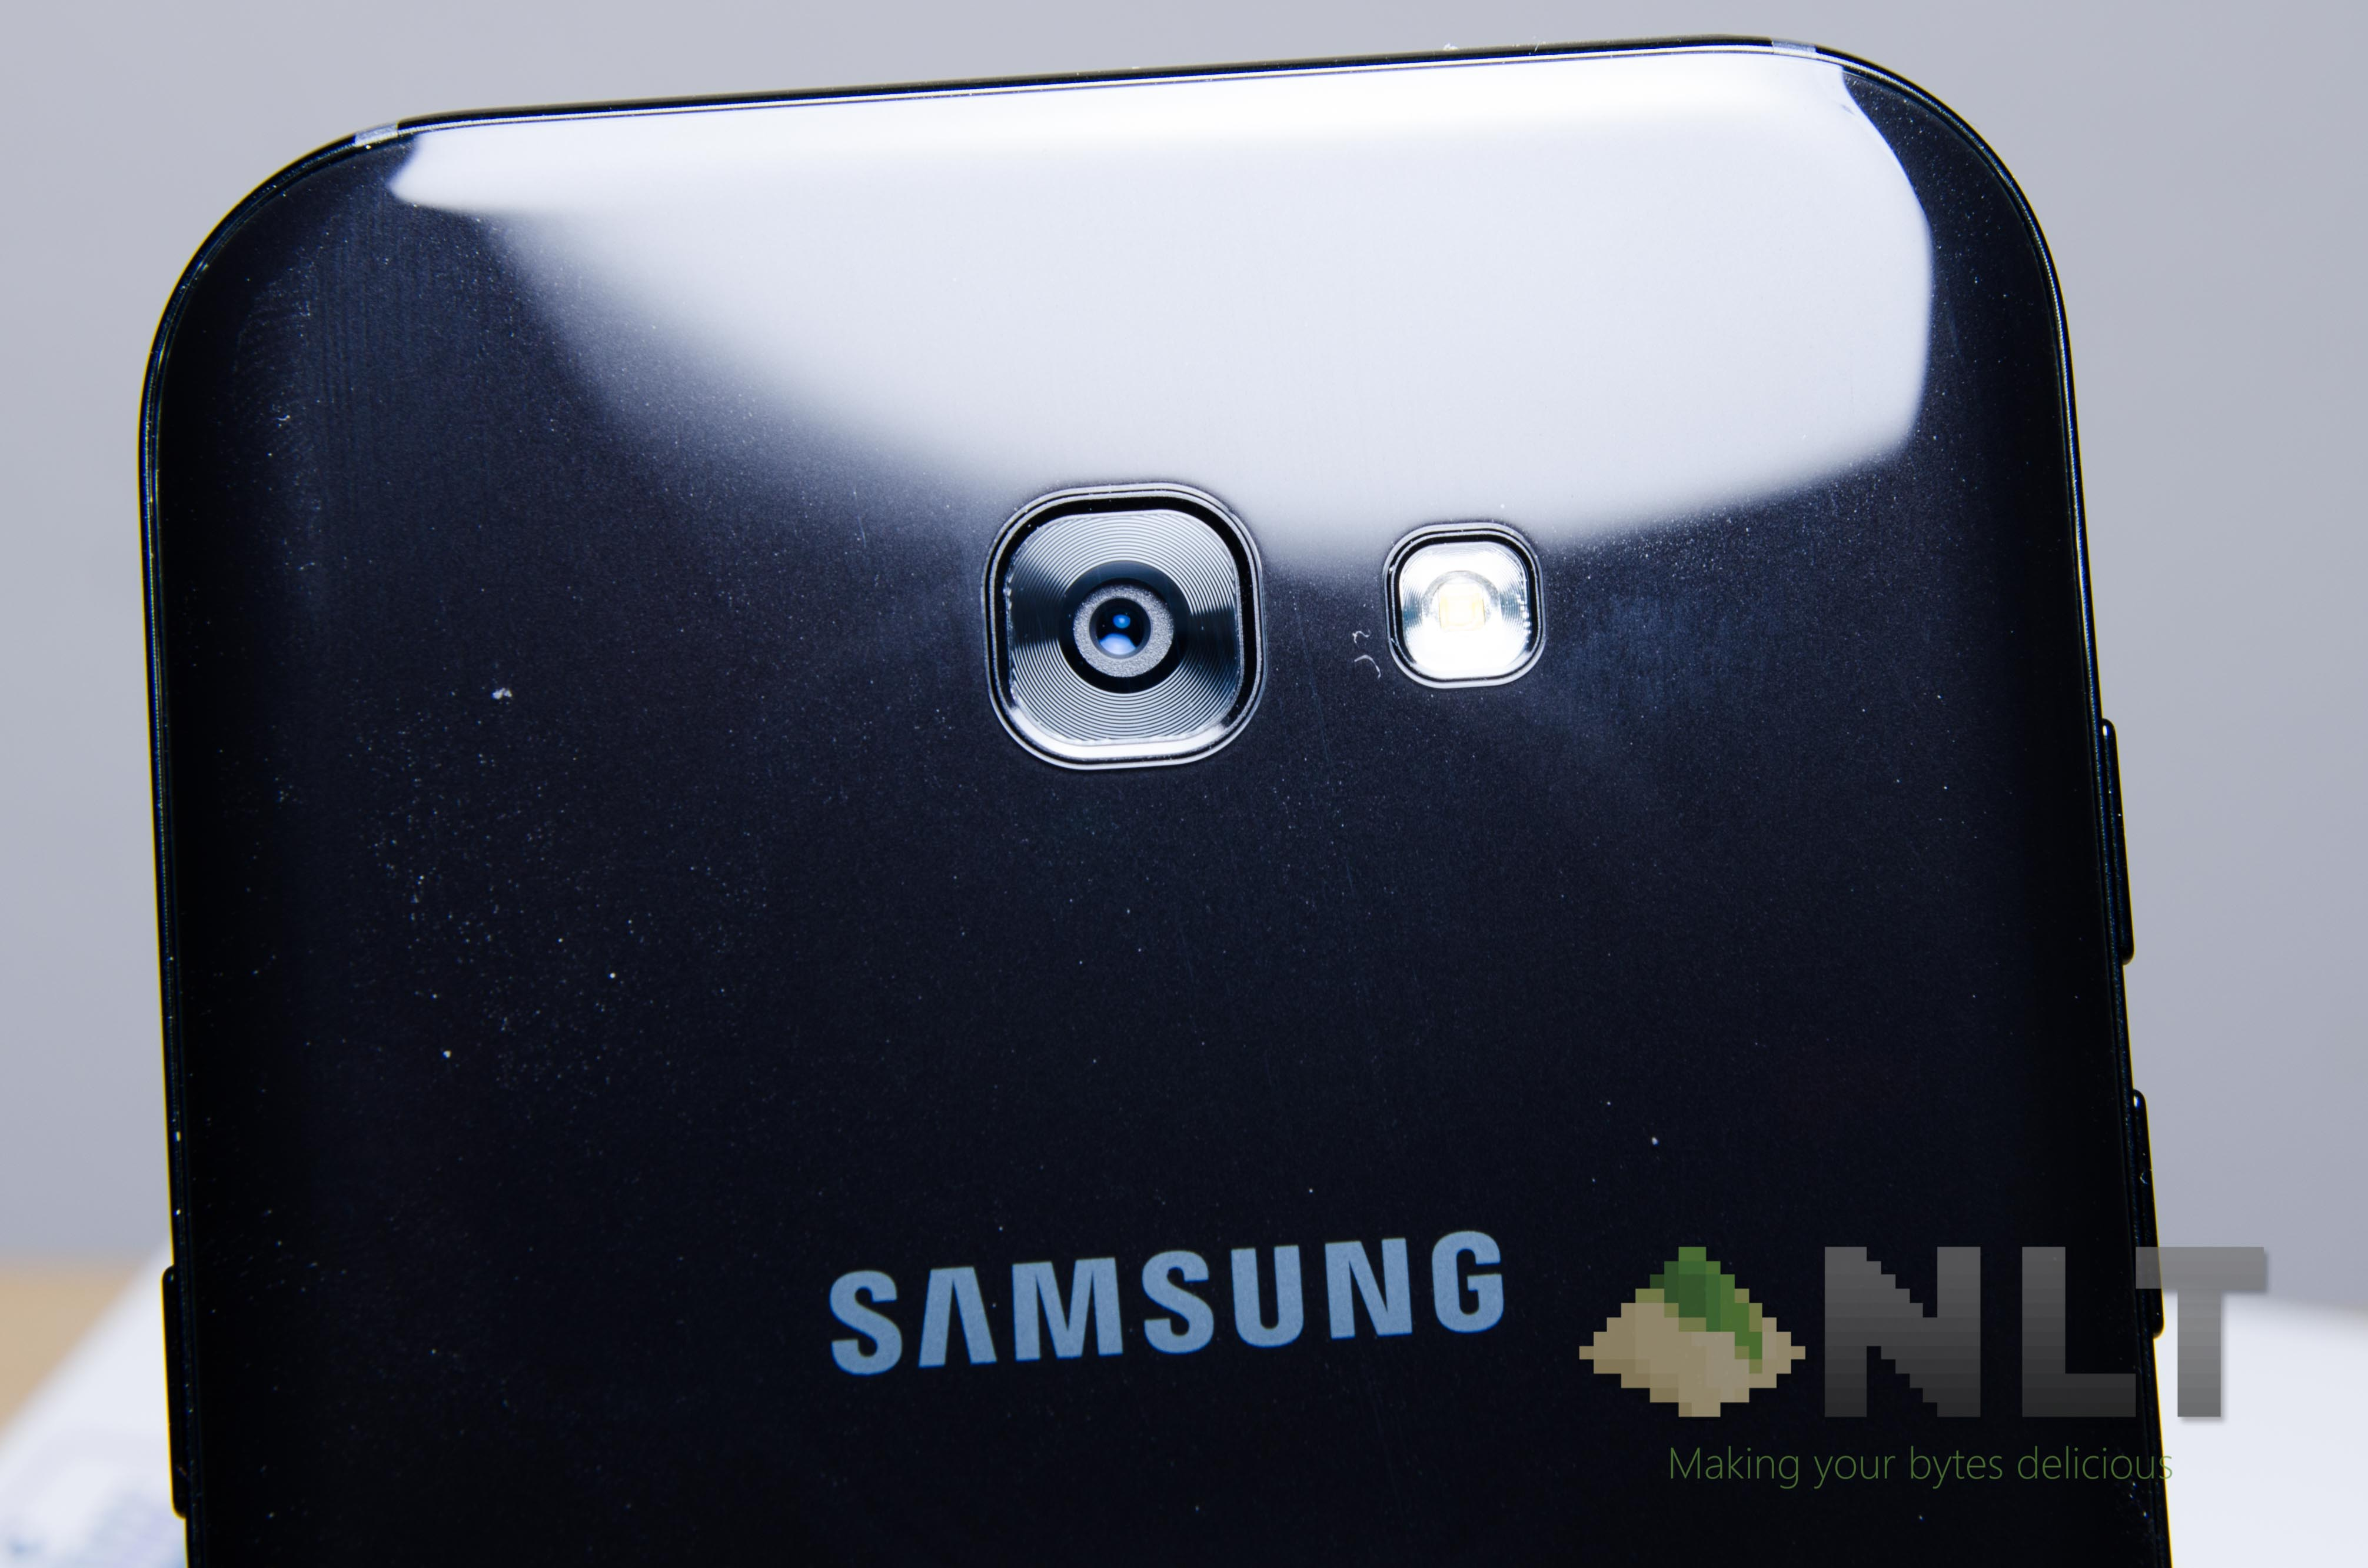 Review Samsung Galaxy A7 2017 A Smartphone To Have Fun Without Worries